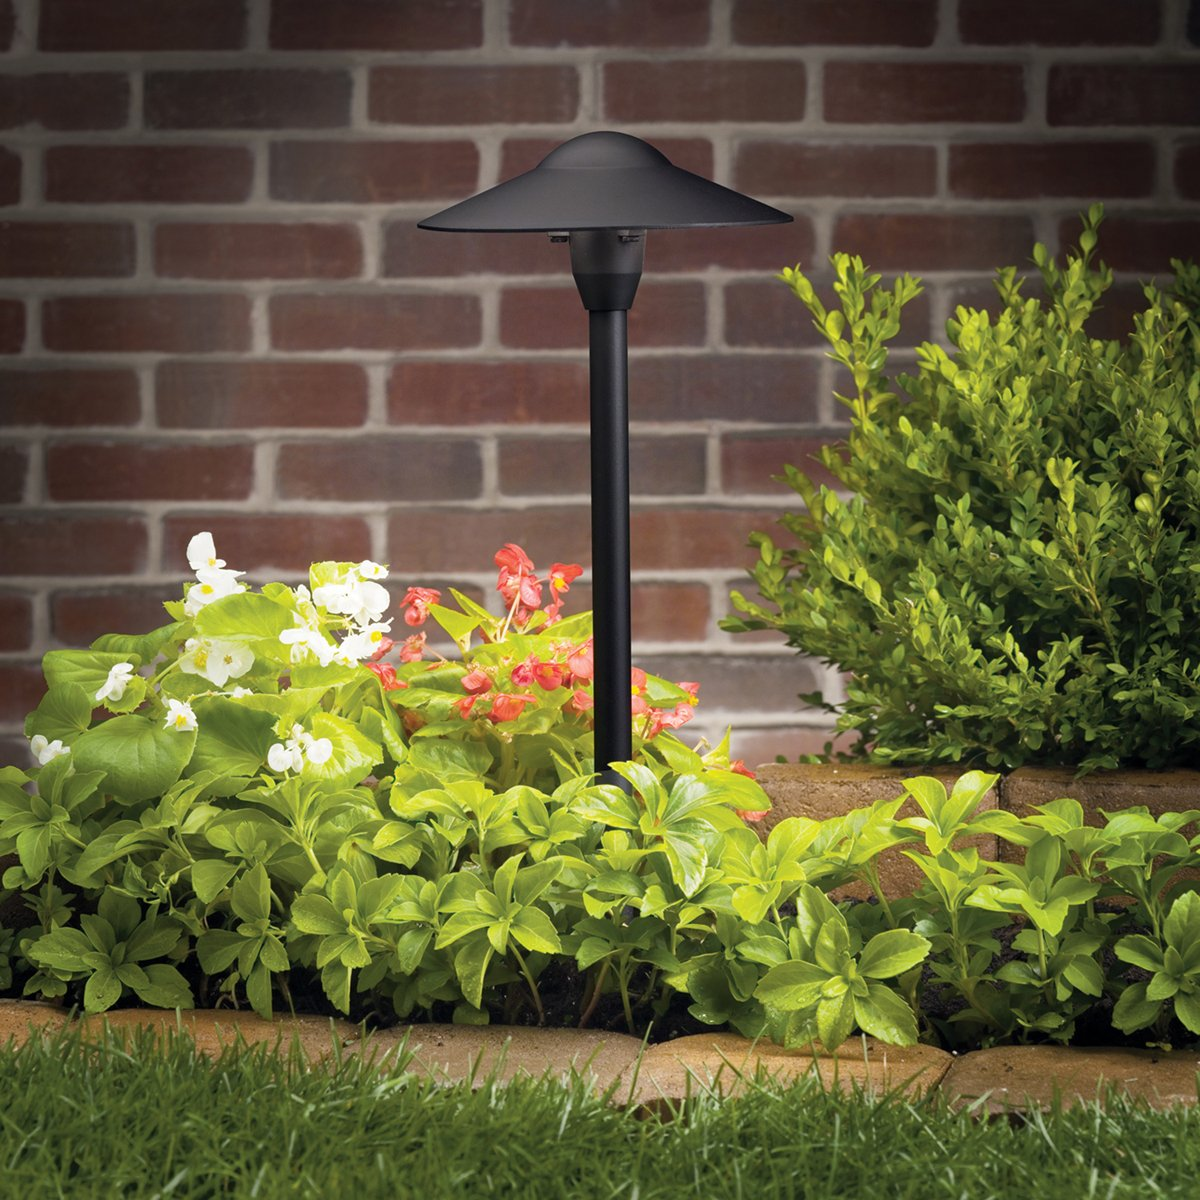 Kichler 15310bkt one light path spread landscape path lights kichler 15310bkt one light path spread landscape path lights amazon aloadofball Images